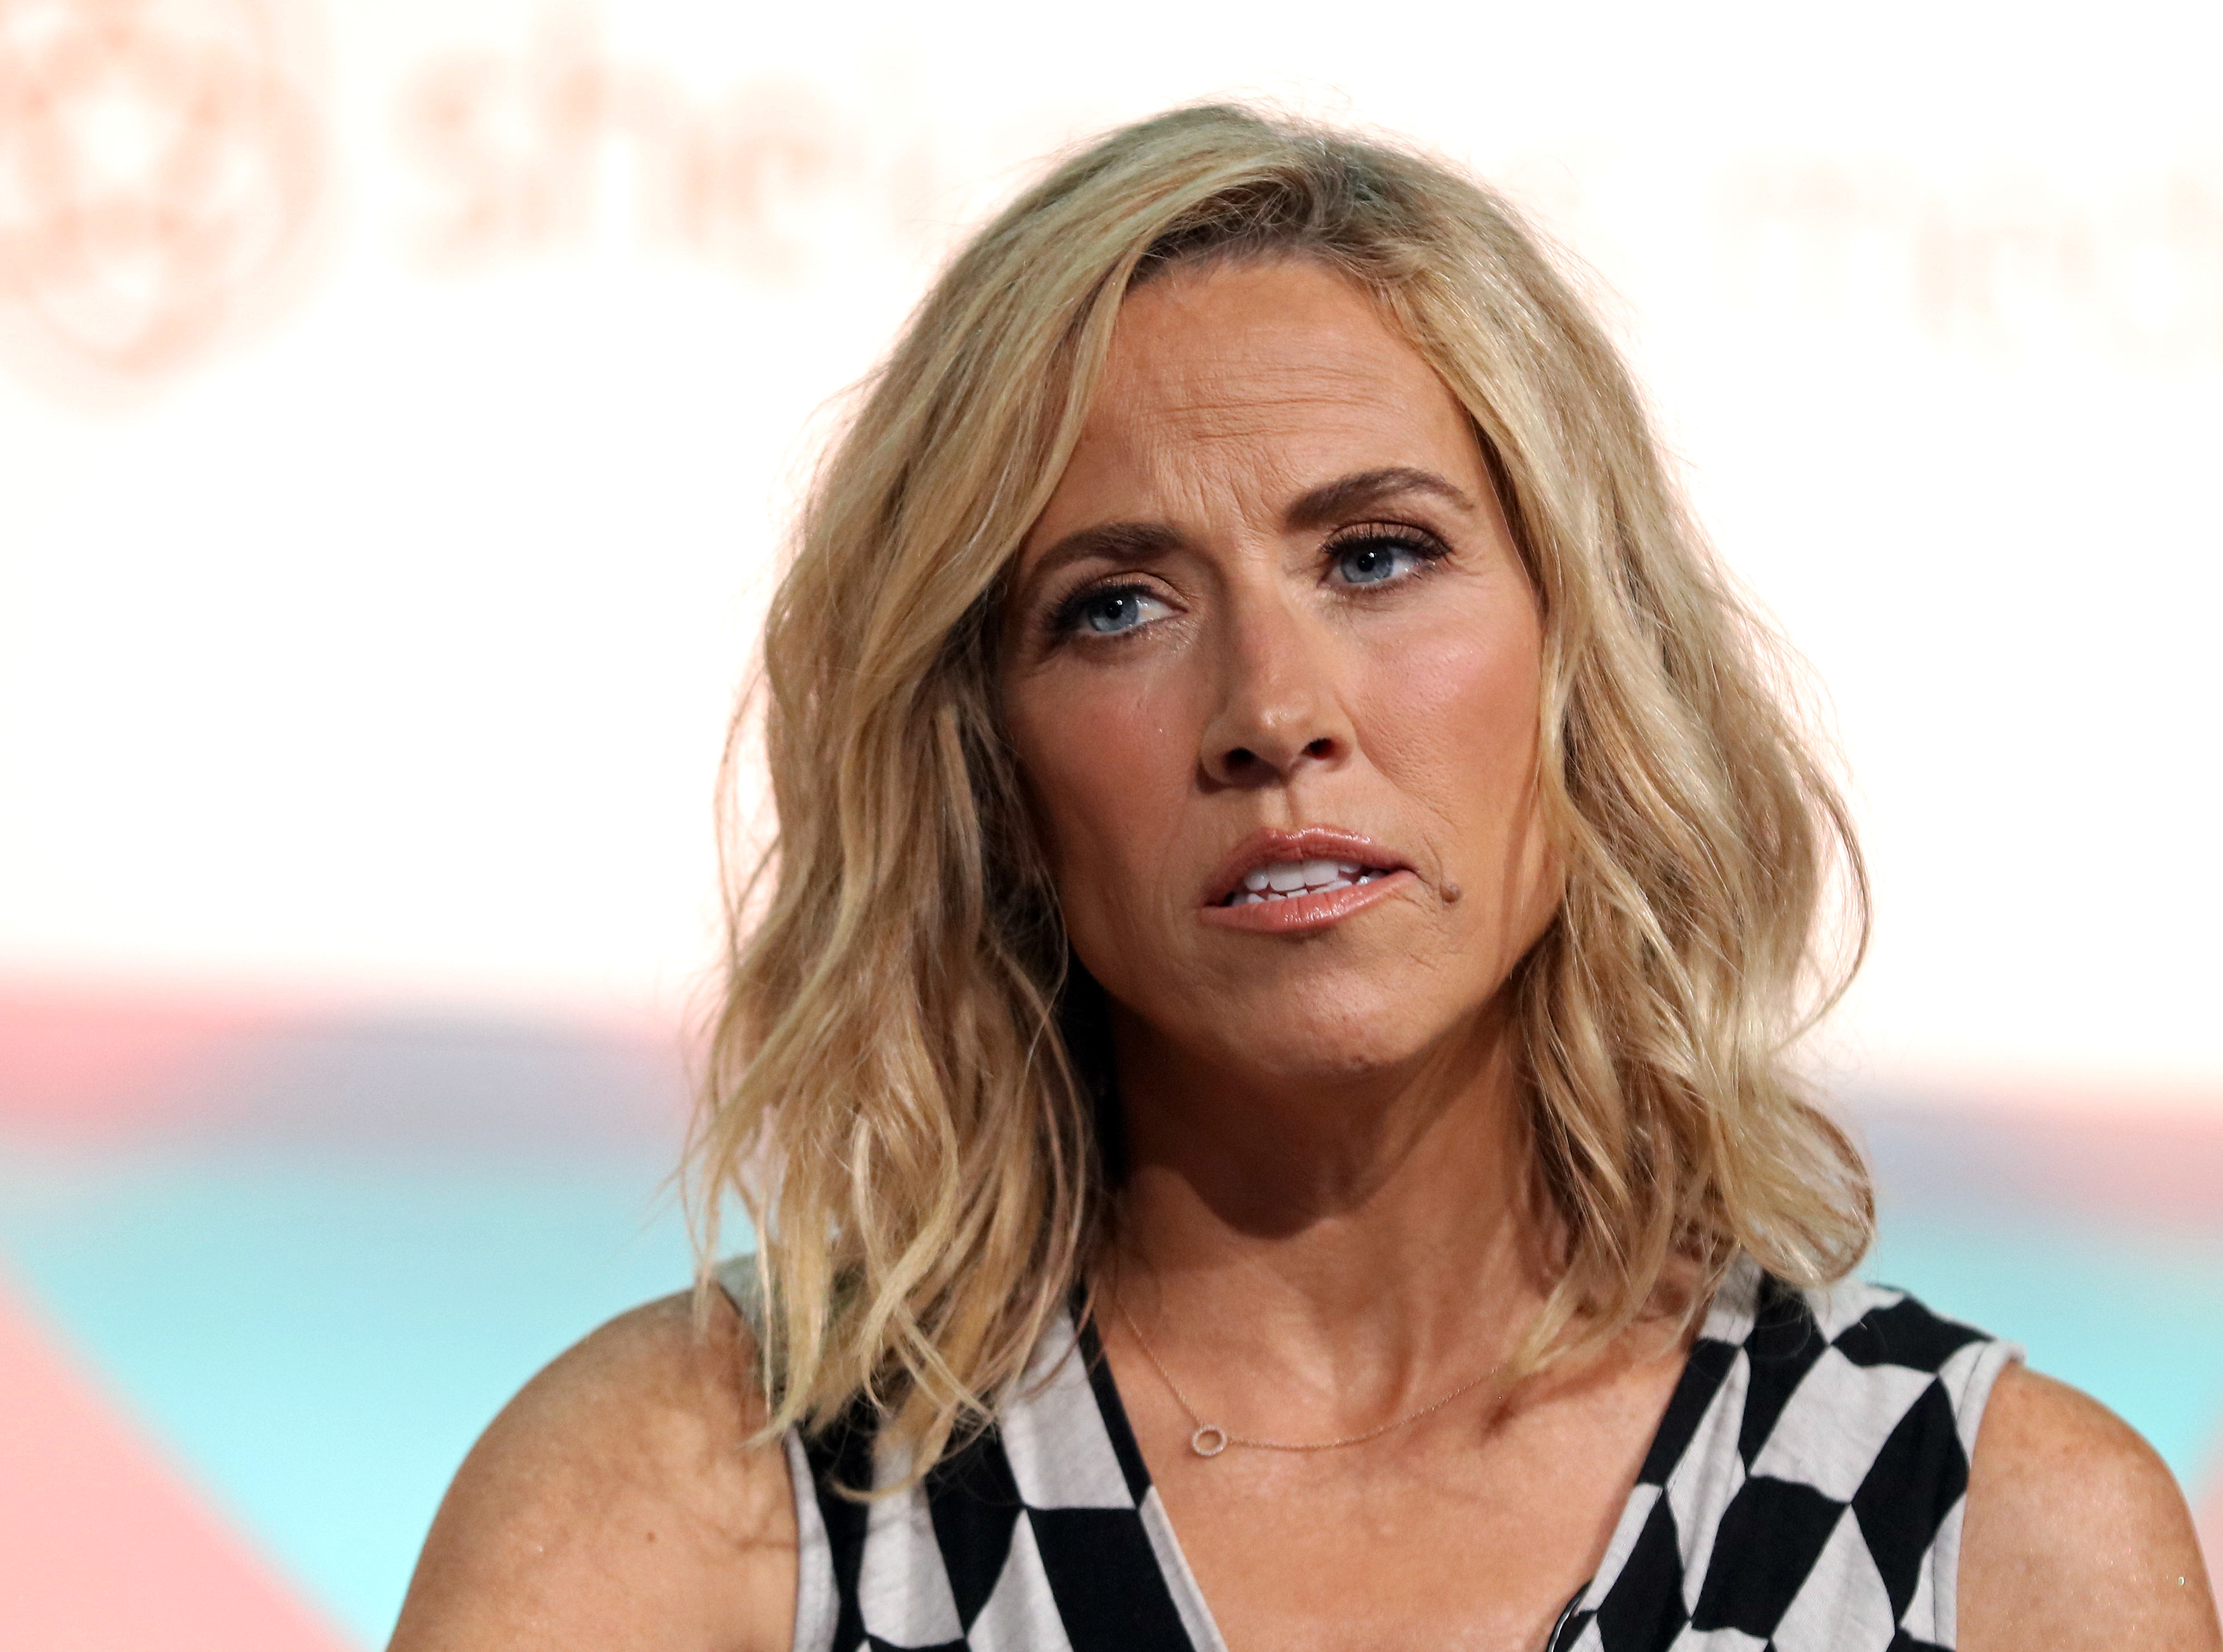 Sheryl Crow attends the #BlogHer16 Experts Among Us Conference on Aug. 5, 2016 in Los Angeles, Calif.